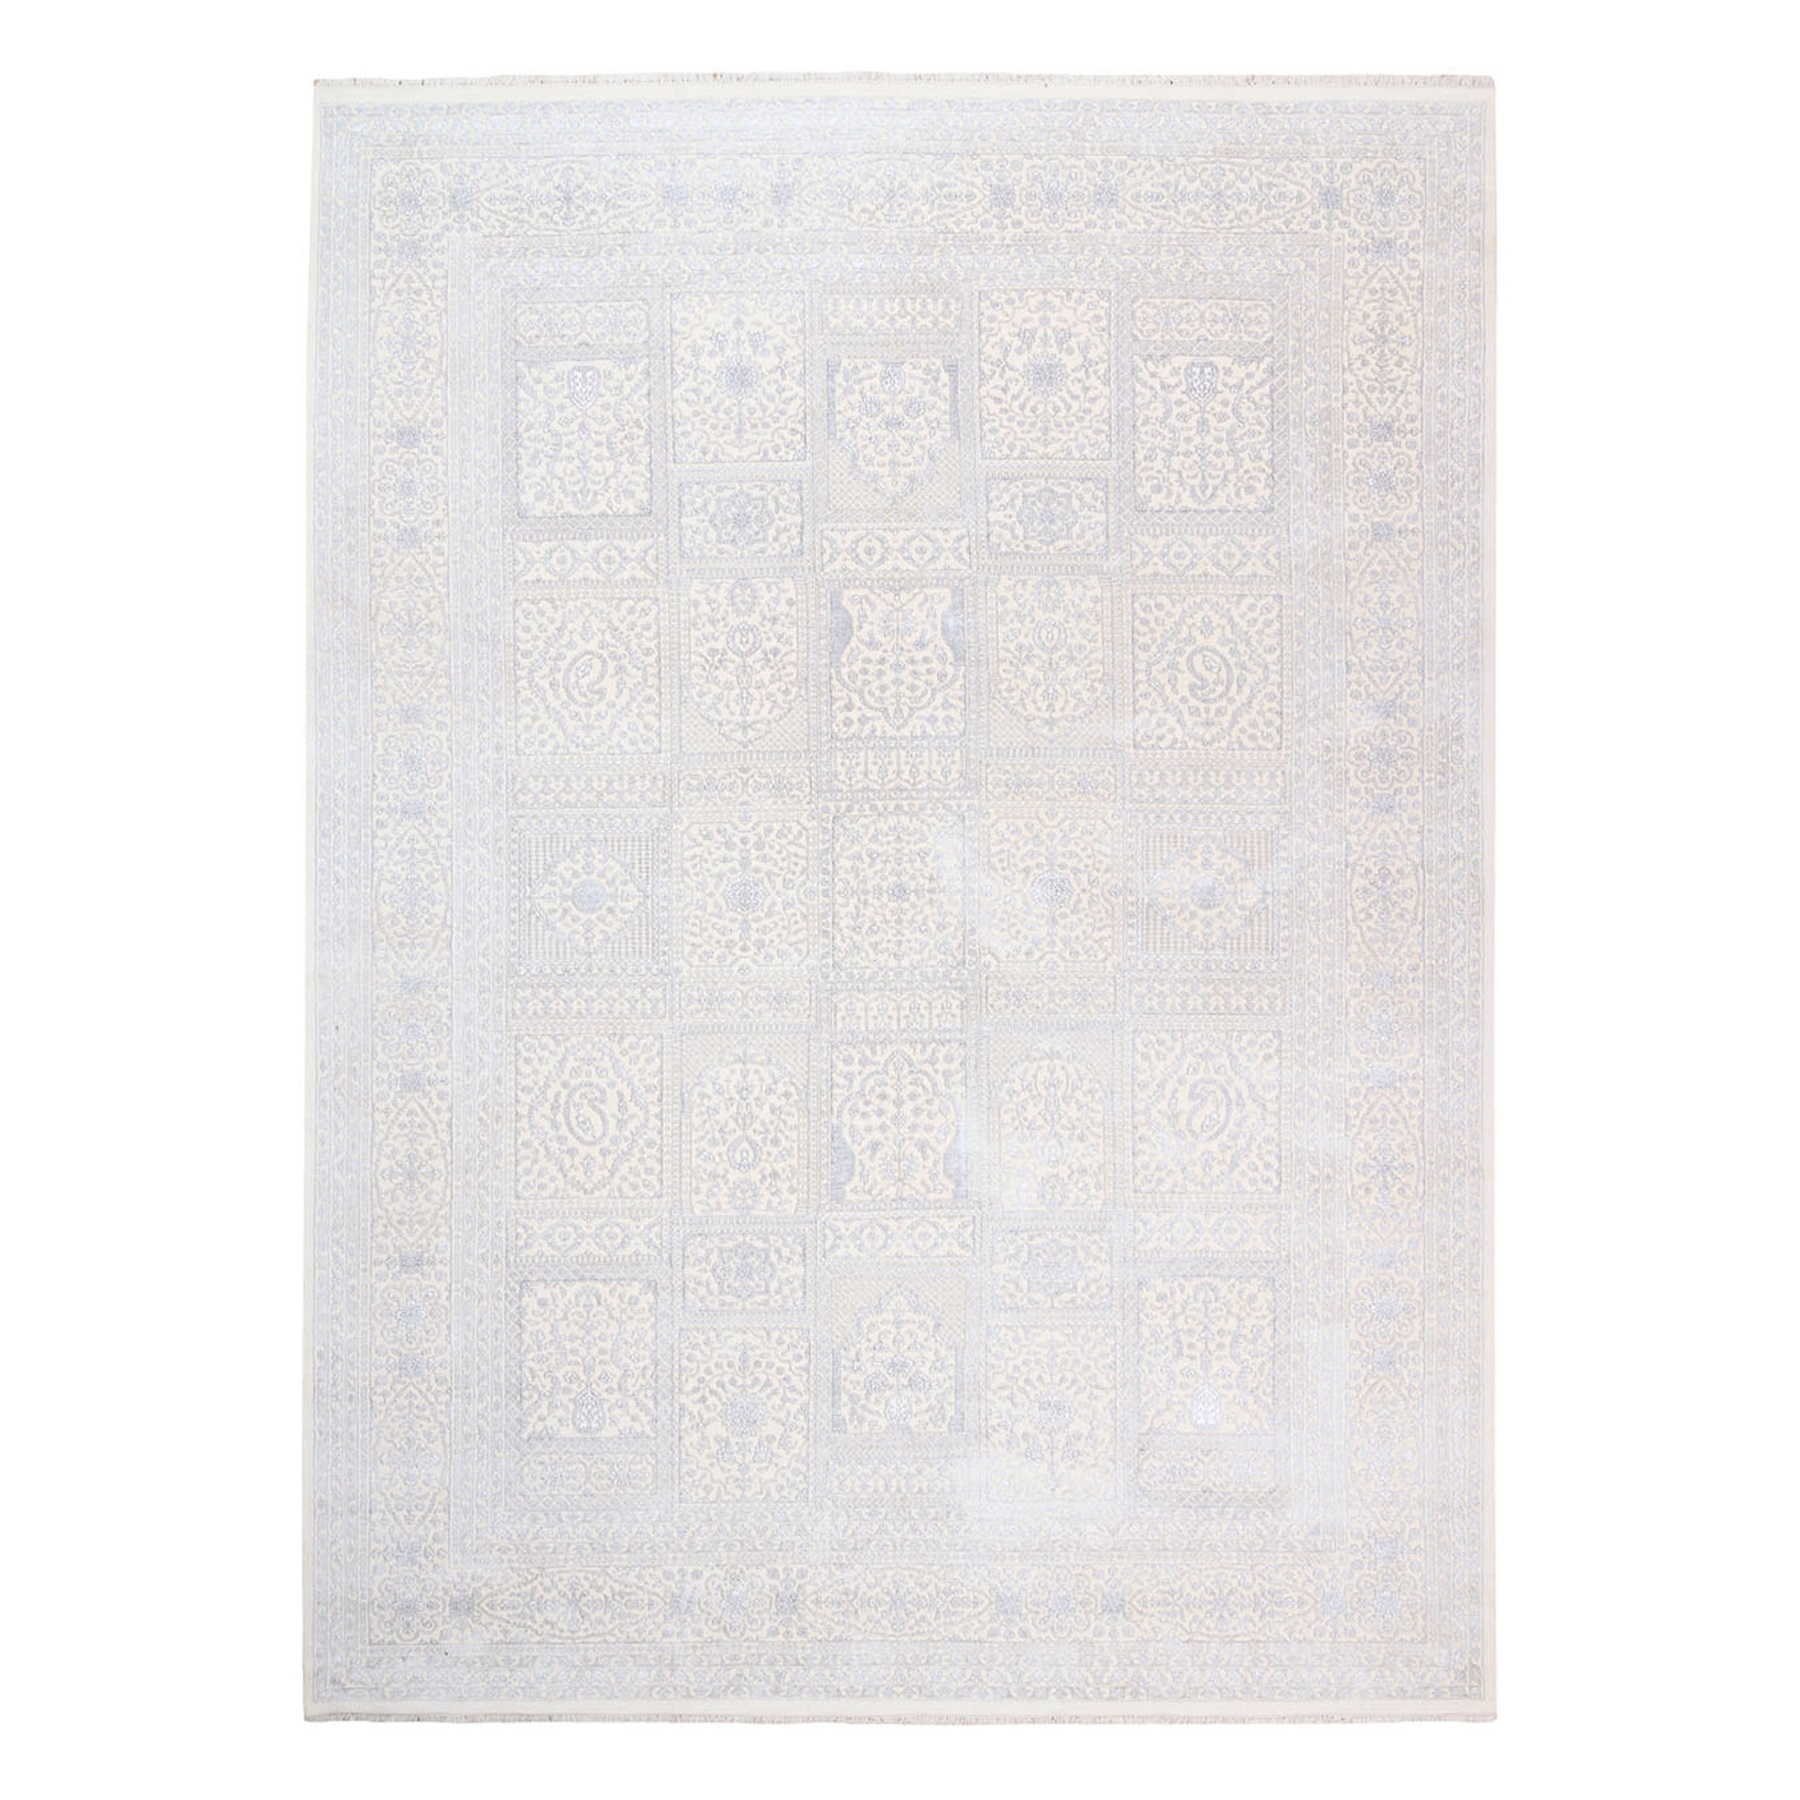 Pirniakan Collection Hand Knotted Ivory Rug No: 1124486